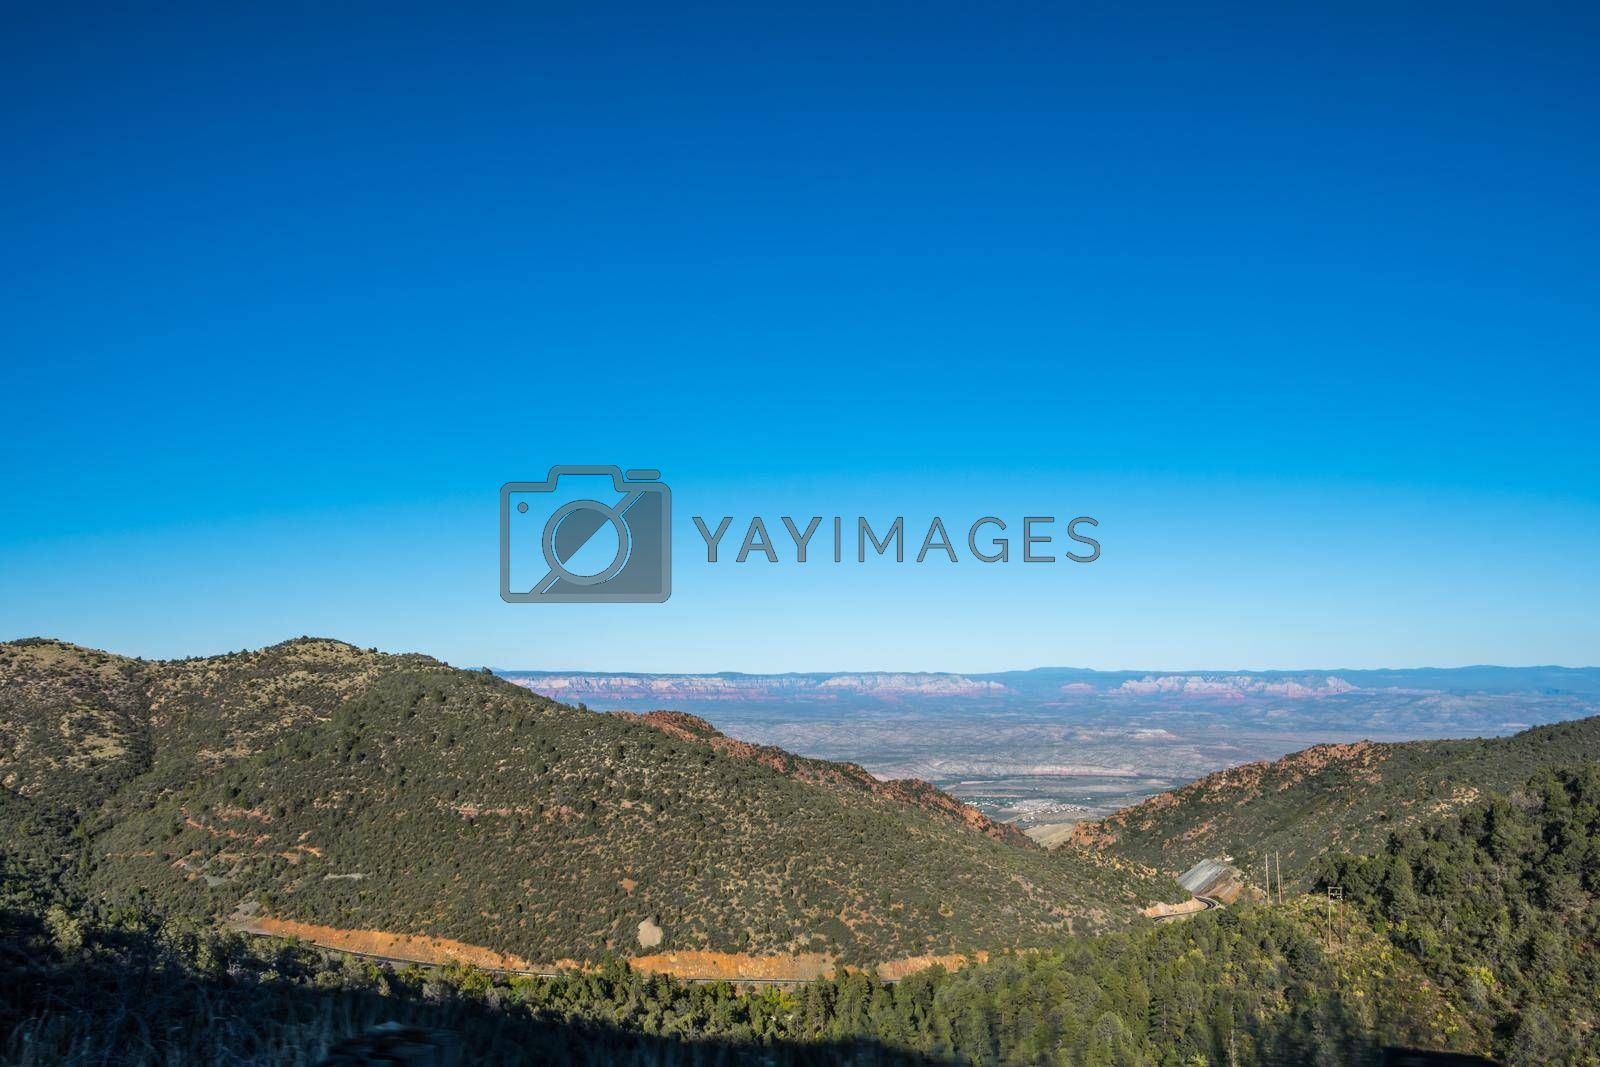 Epic mountain landscape scenery while traversing throughout the mountain roads